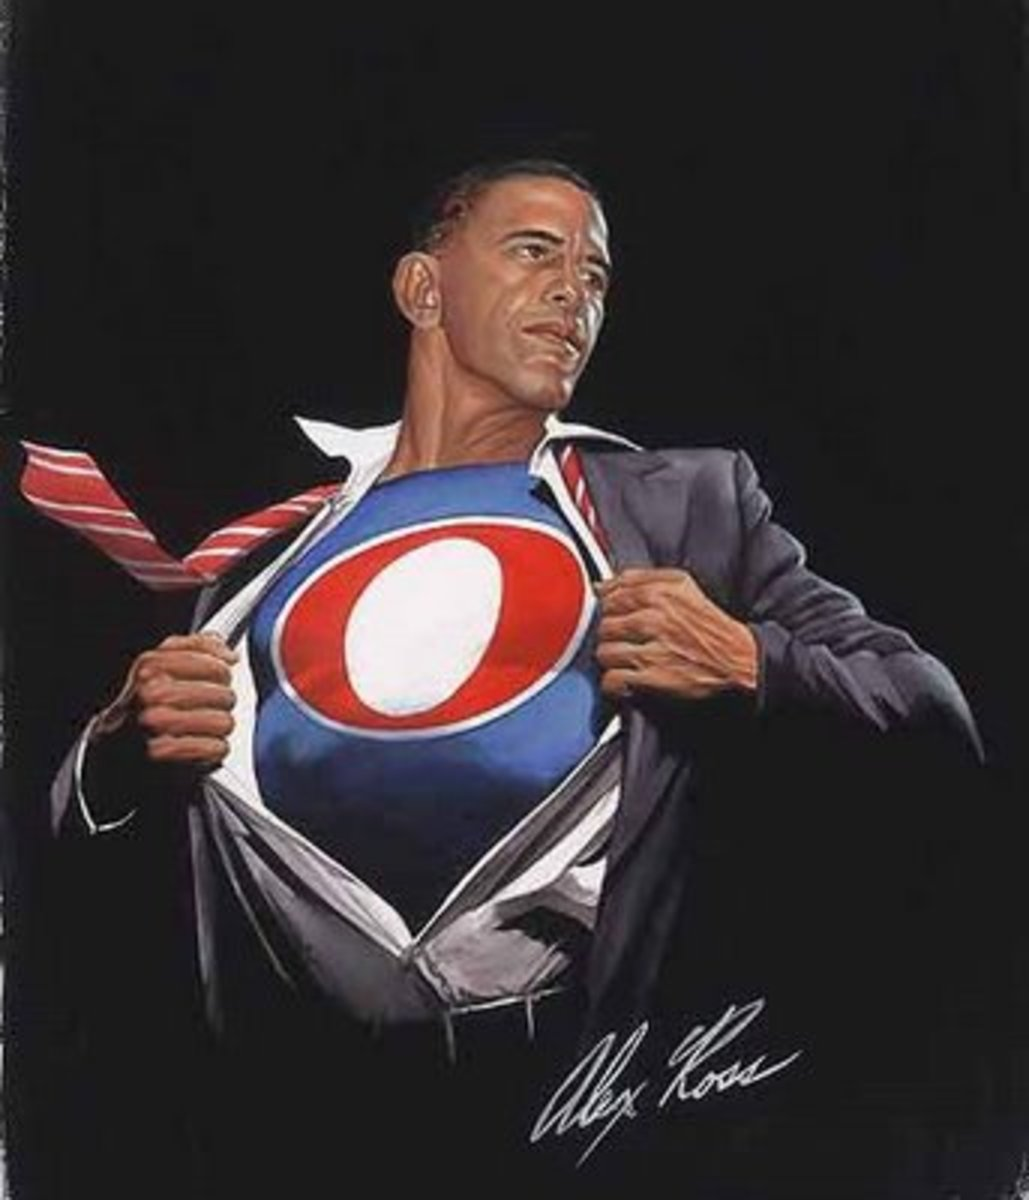 "Was directly based on Alex Ross picture of ""Obamaman"". Sleeve, back of hand, shirt crease, and tie are IDENTICAL"